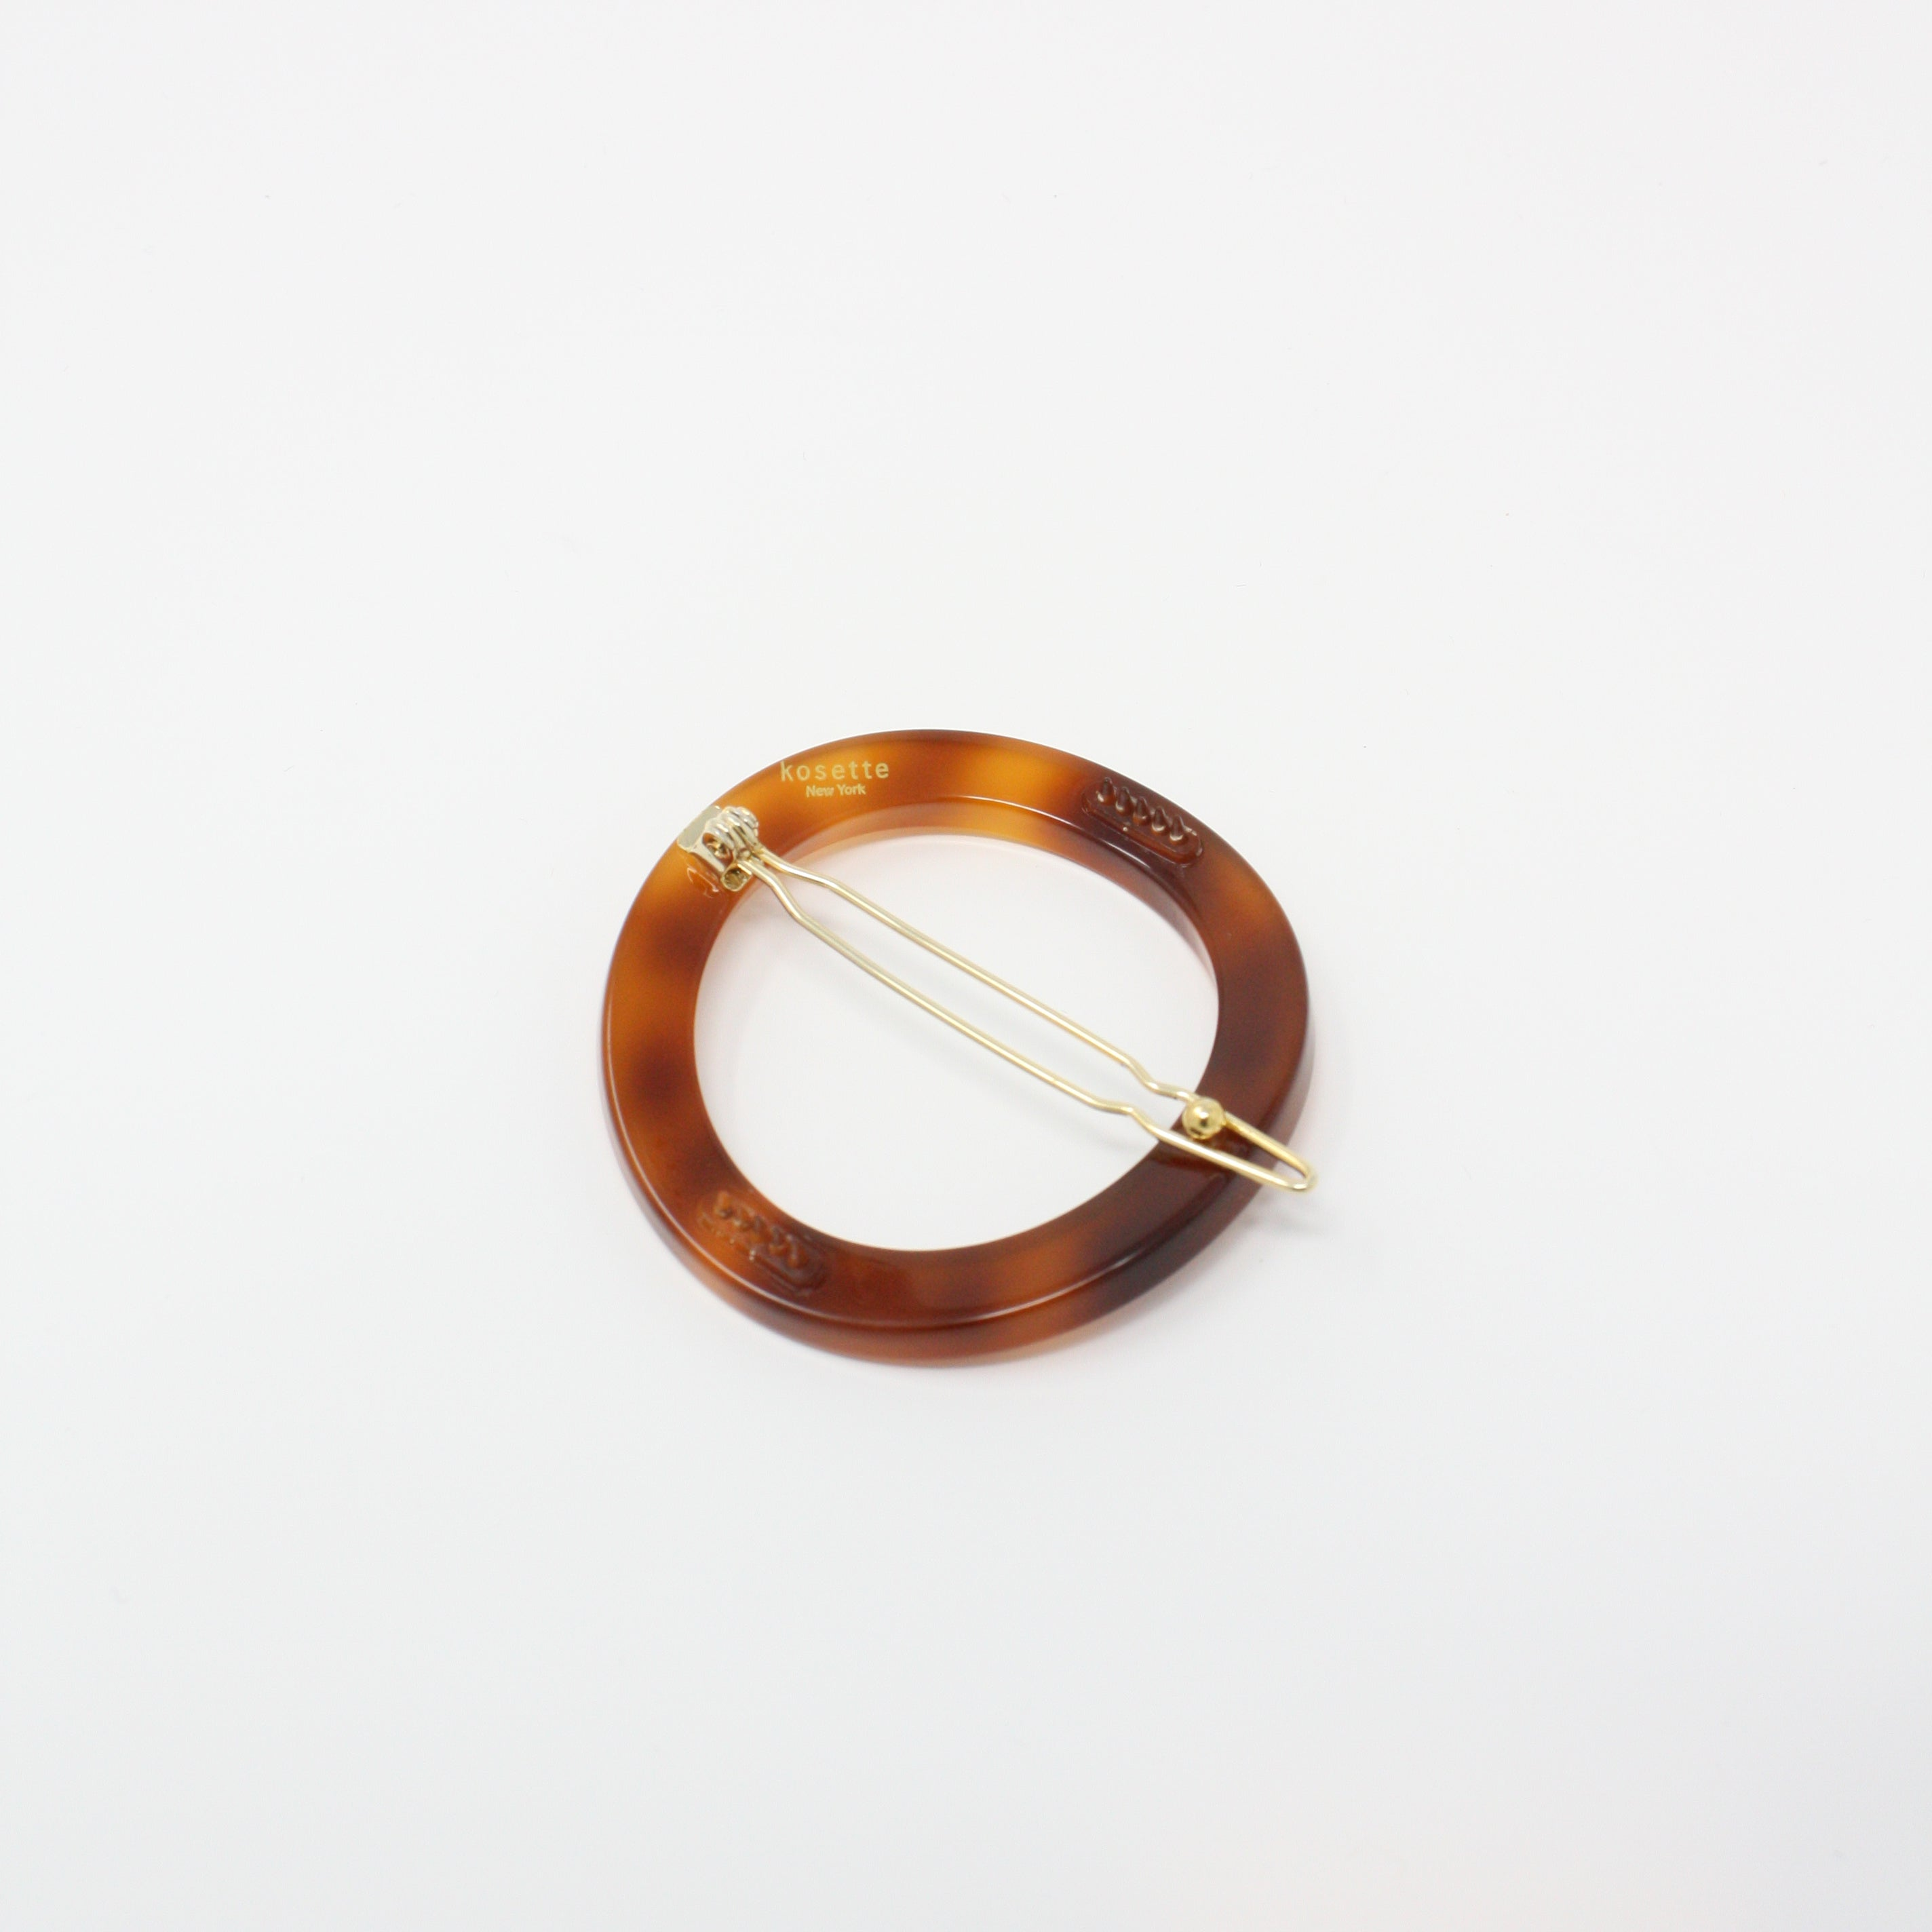 DESL035-0 - Circle Hair Barrette